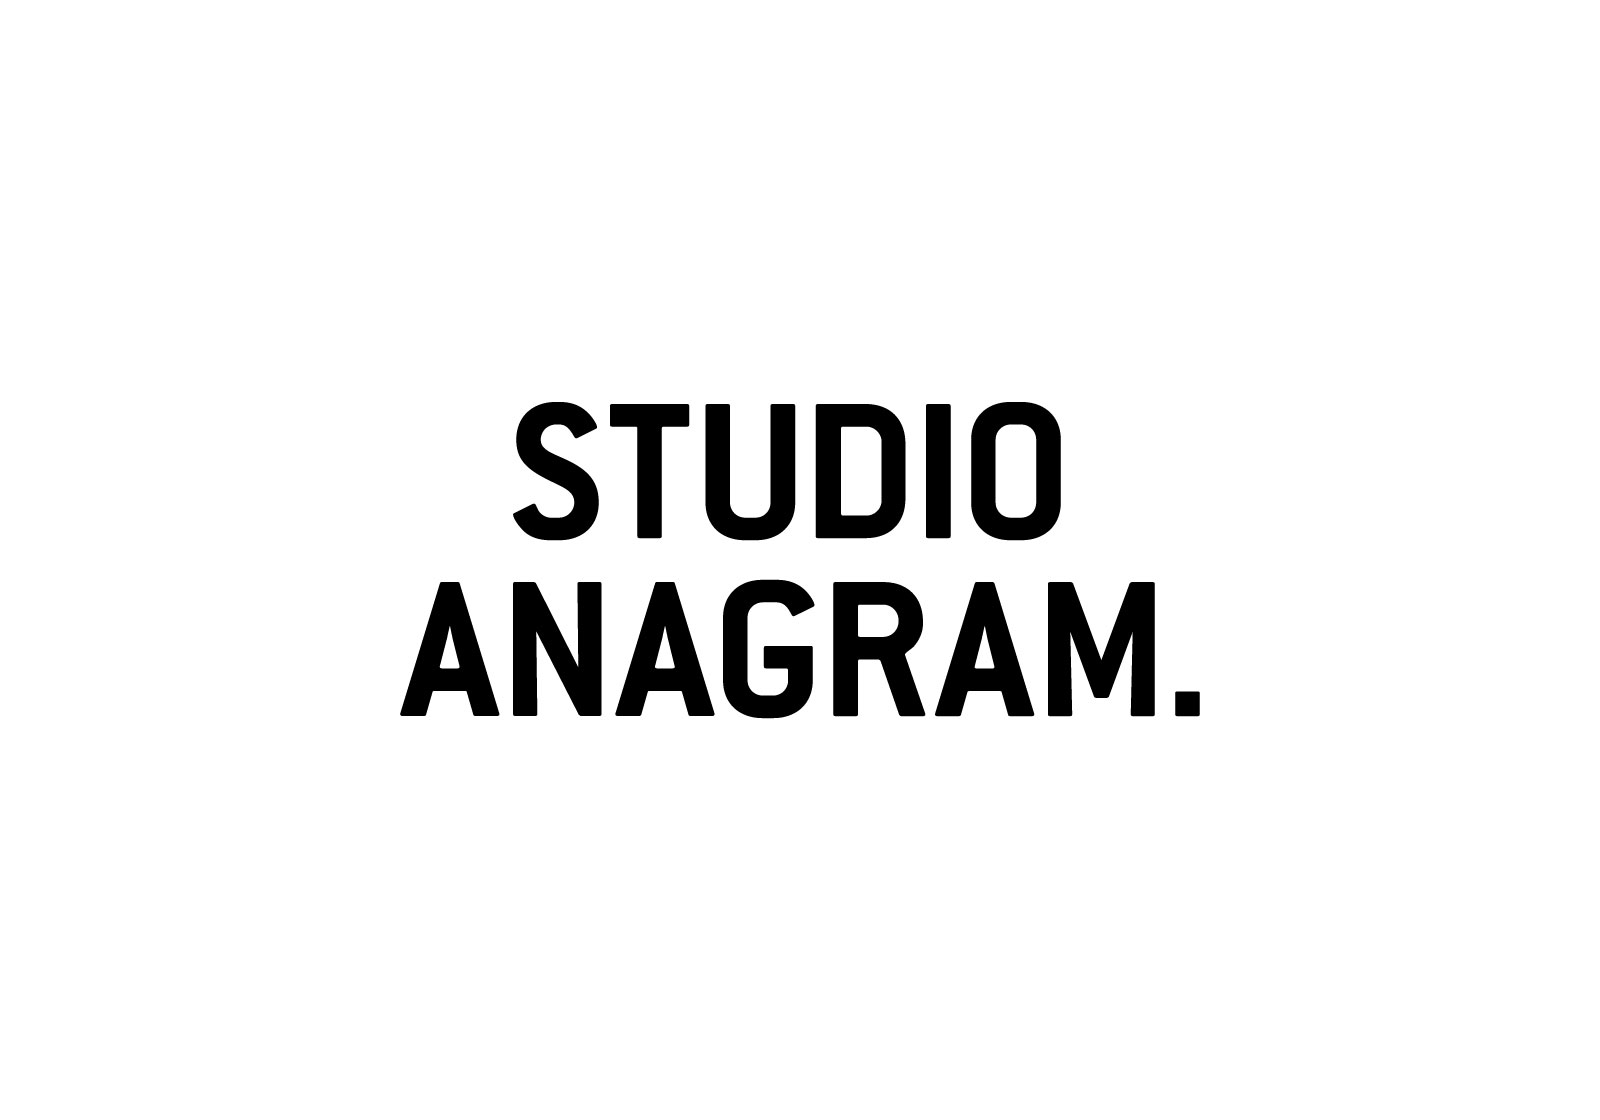 STUDIO ANAGRAM.